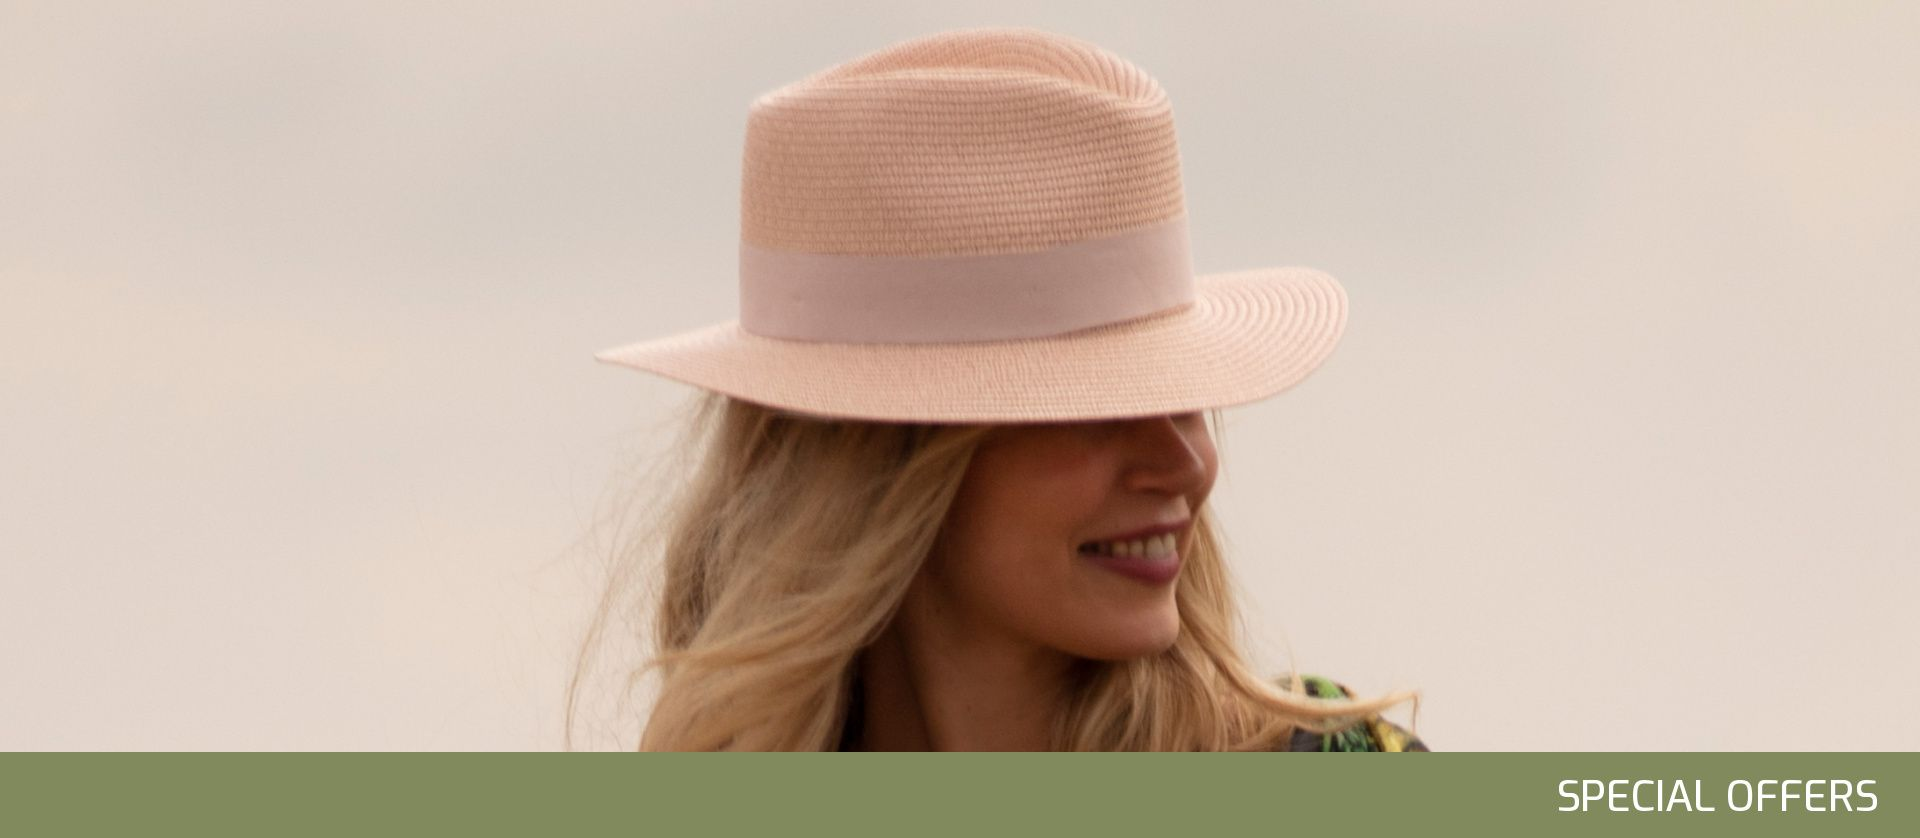 Special Offers - Hats